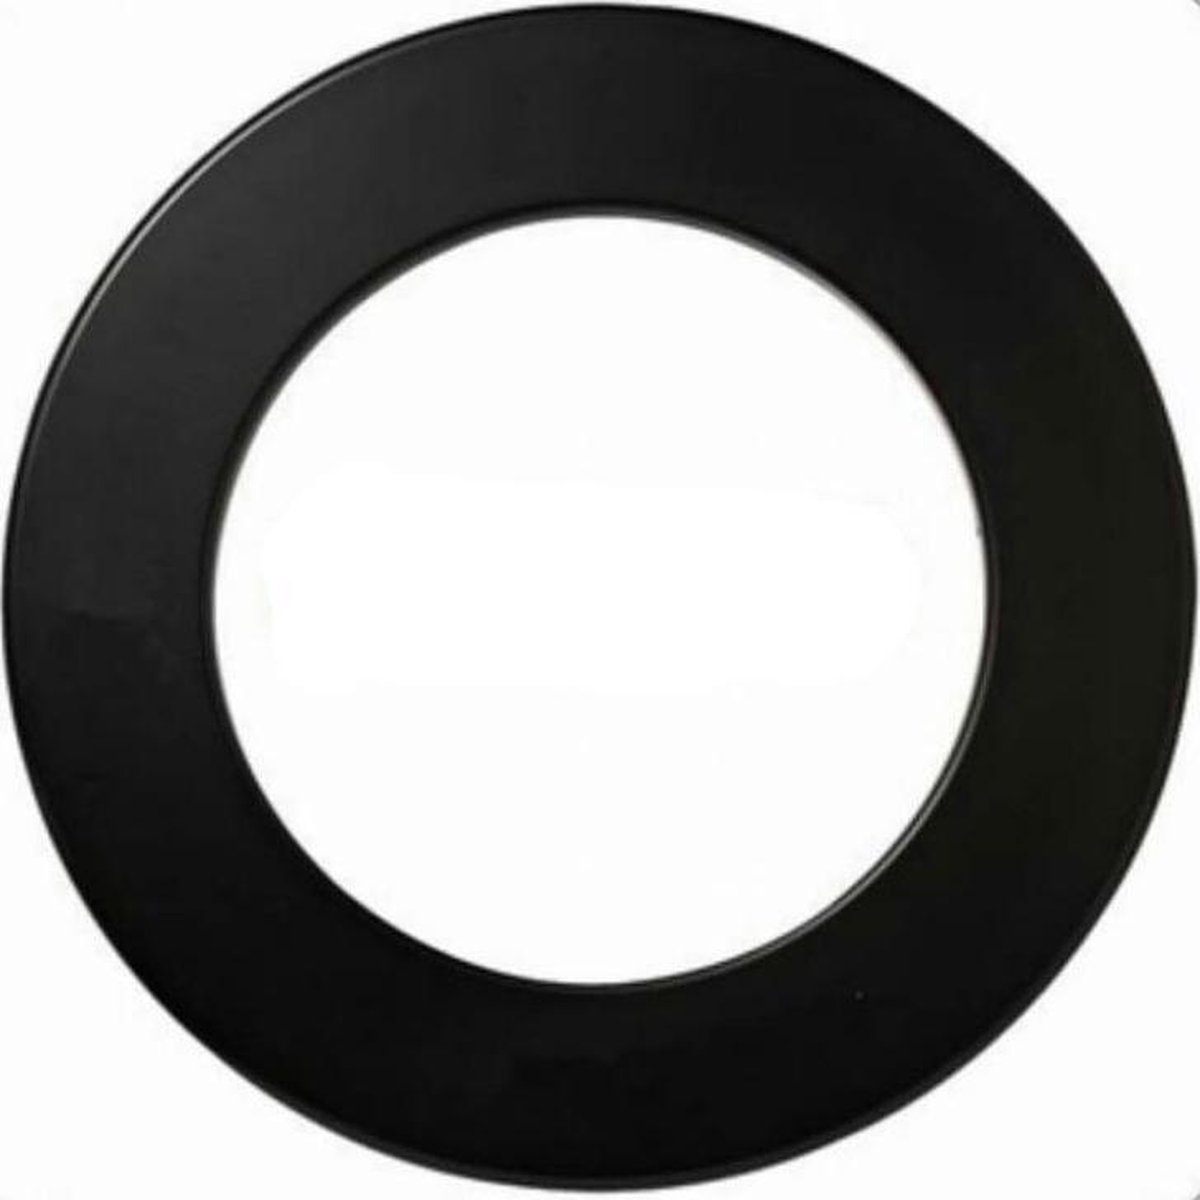 Winmau Dartbord Surround Ring - Plain Black